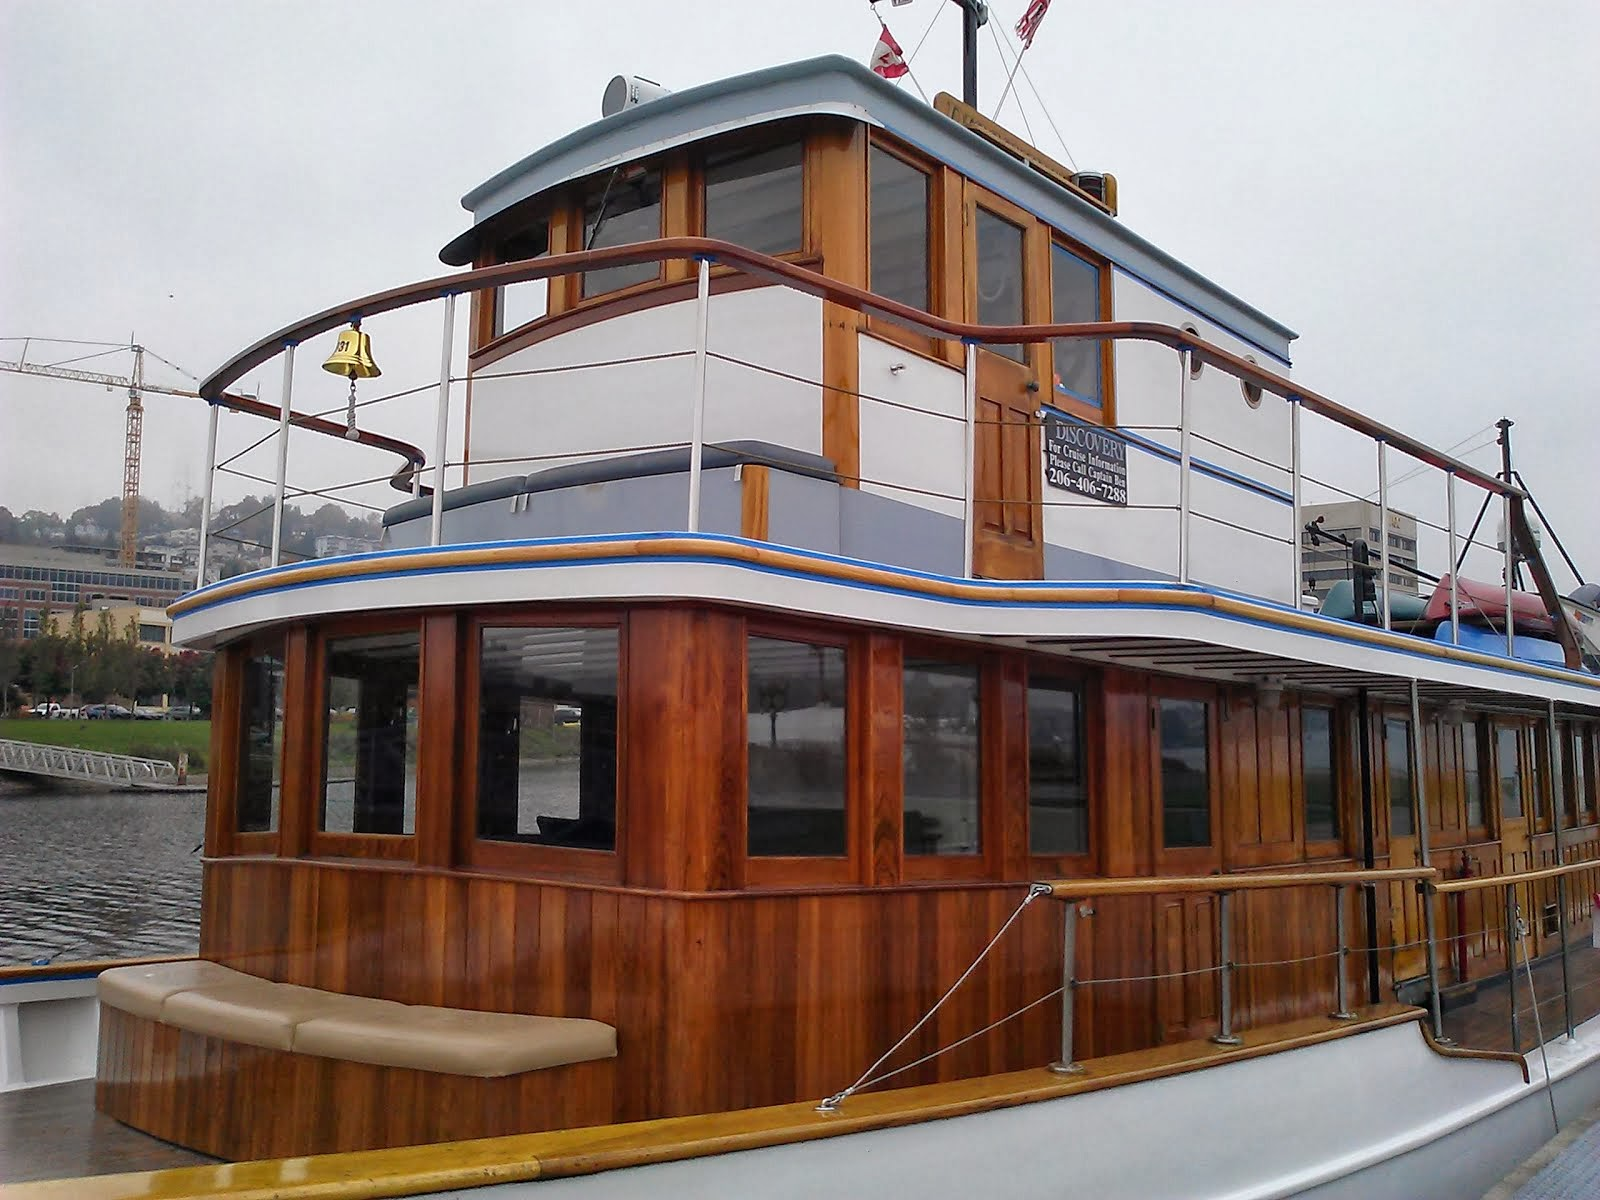 Close up of new Saloon, Wheel House in new position, with a captain's cabin behind.